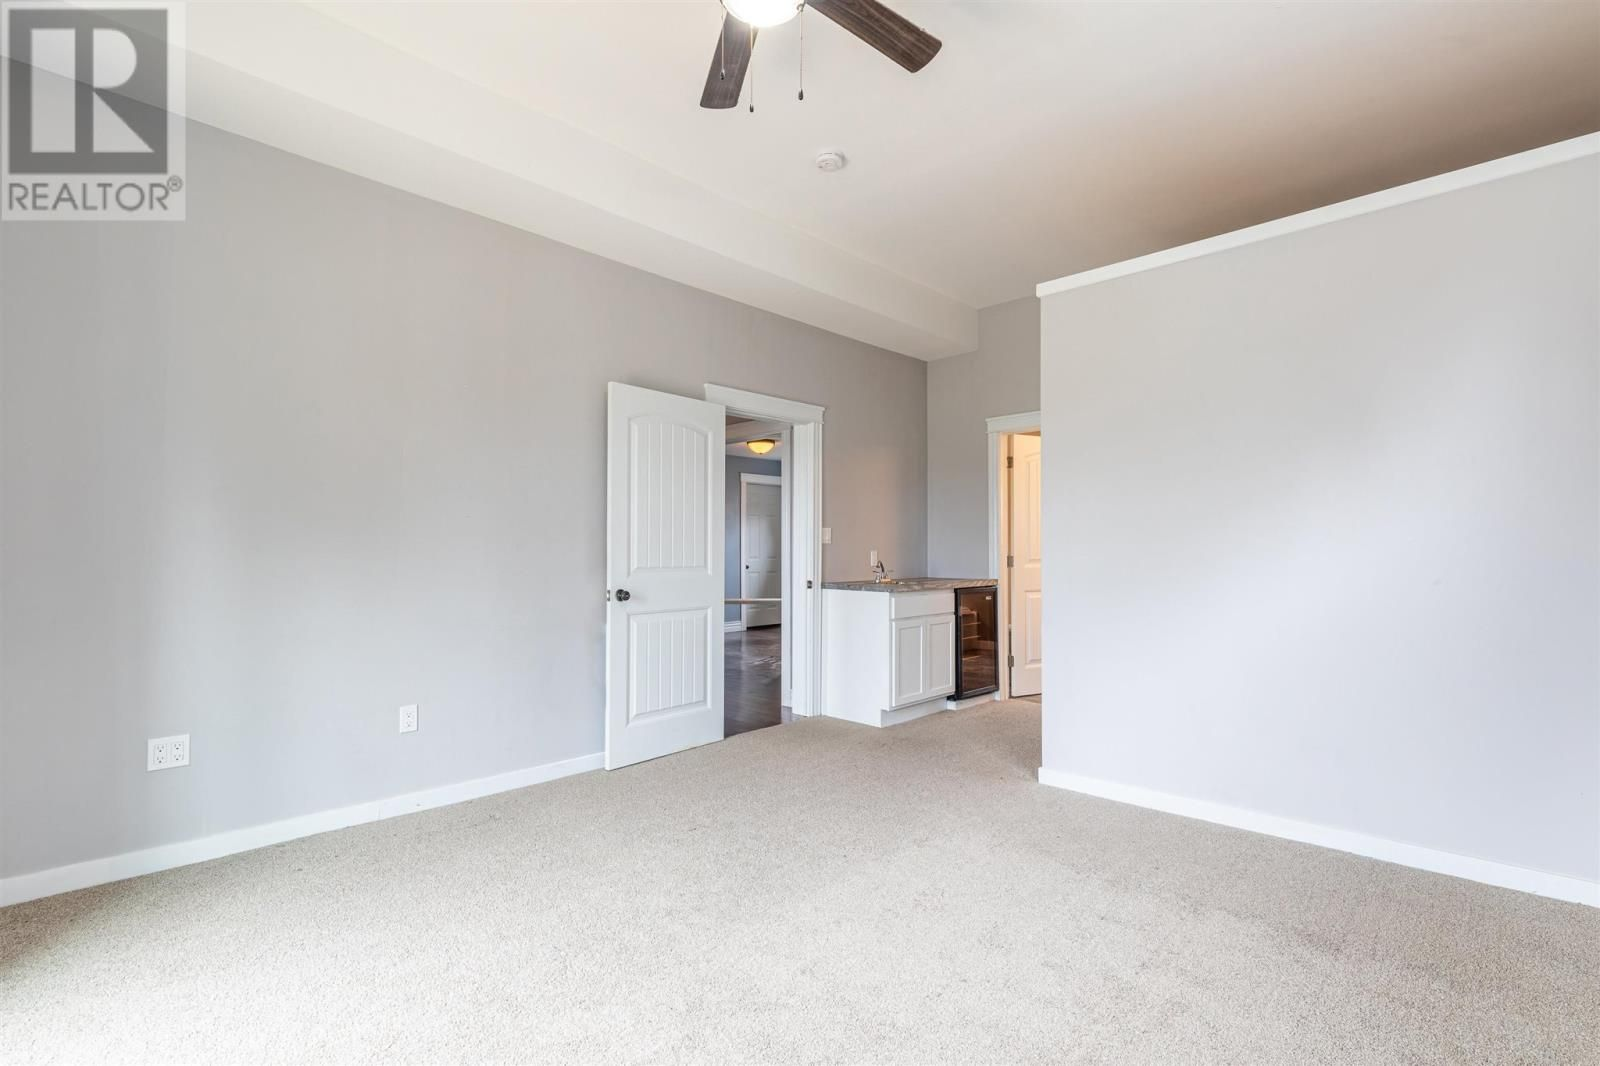 Photo 15: Photos: 5 Cherry Lane in Stratford: House for sale : MLS®# 202119303